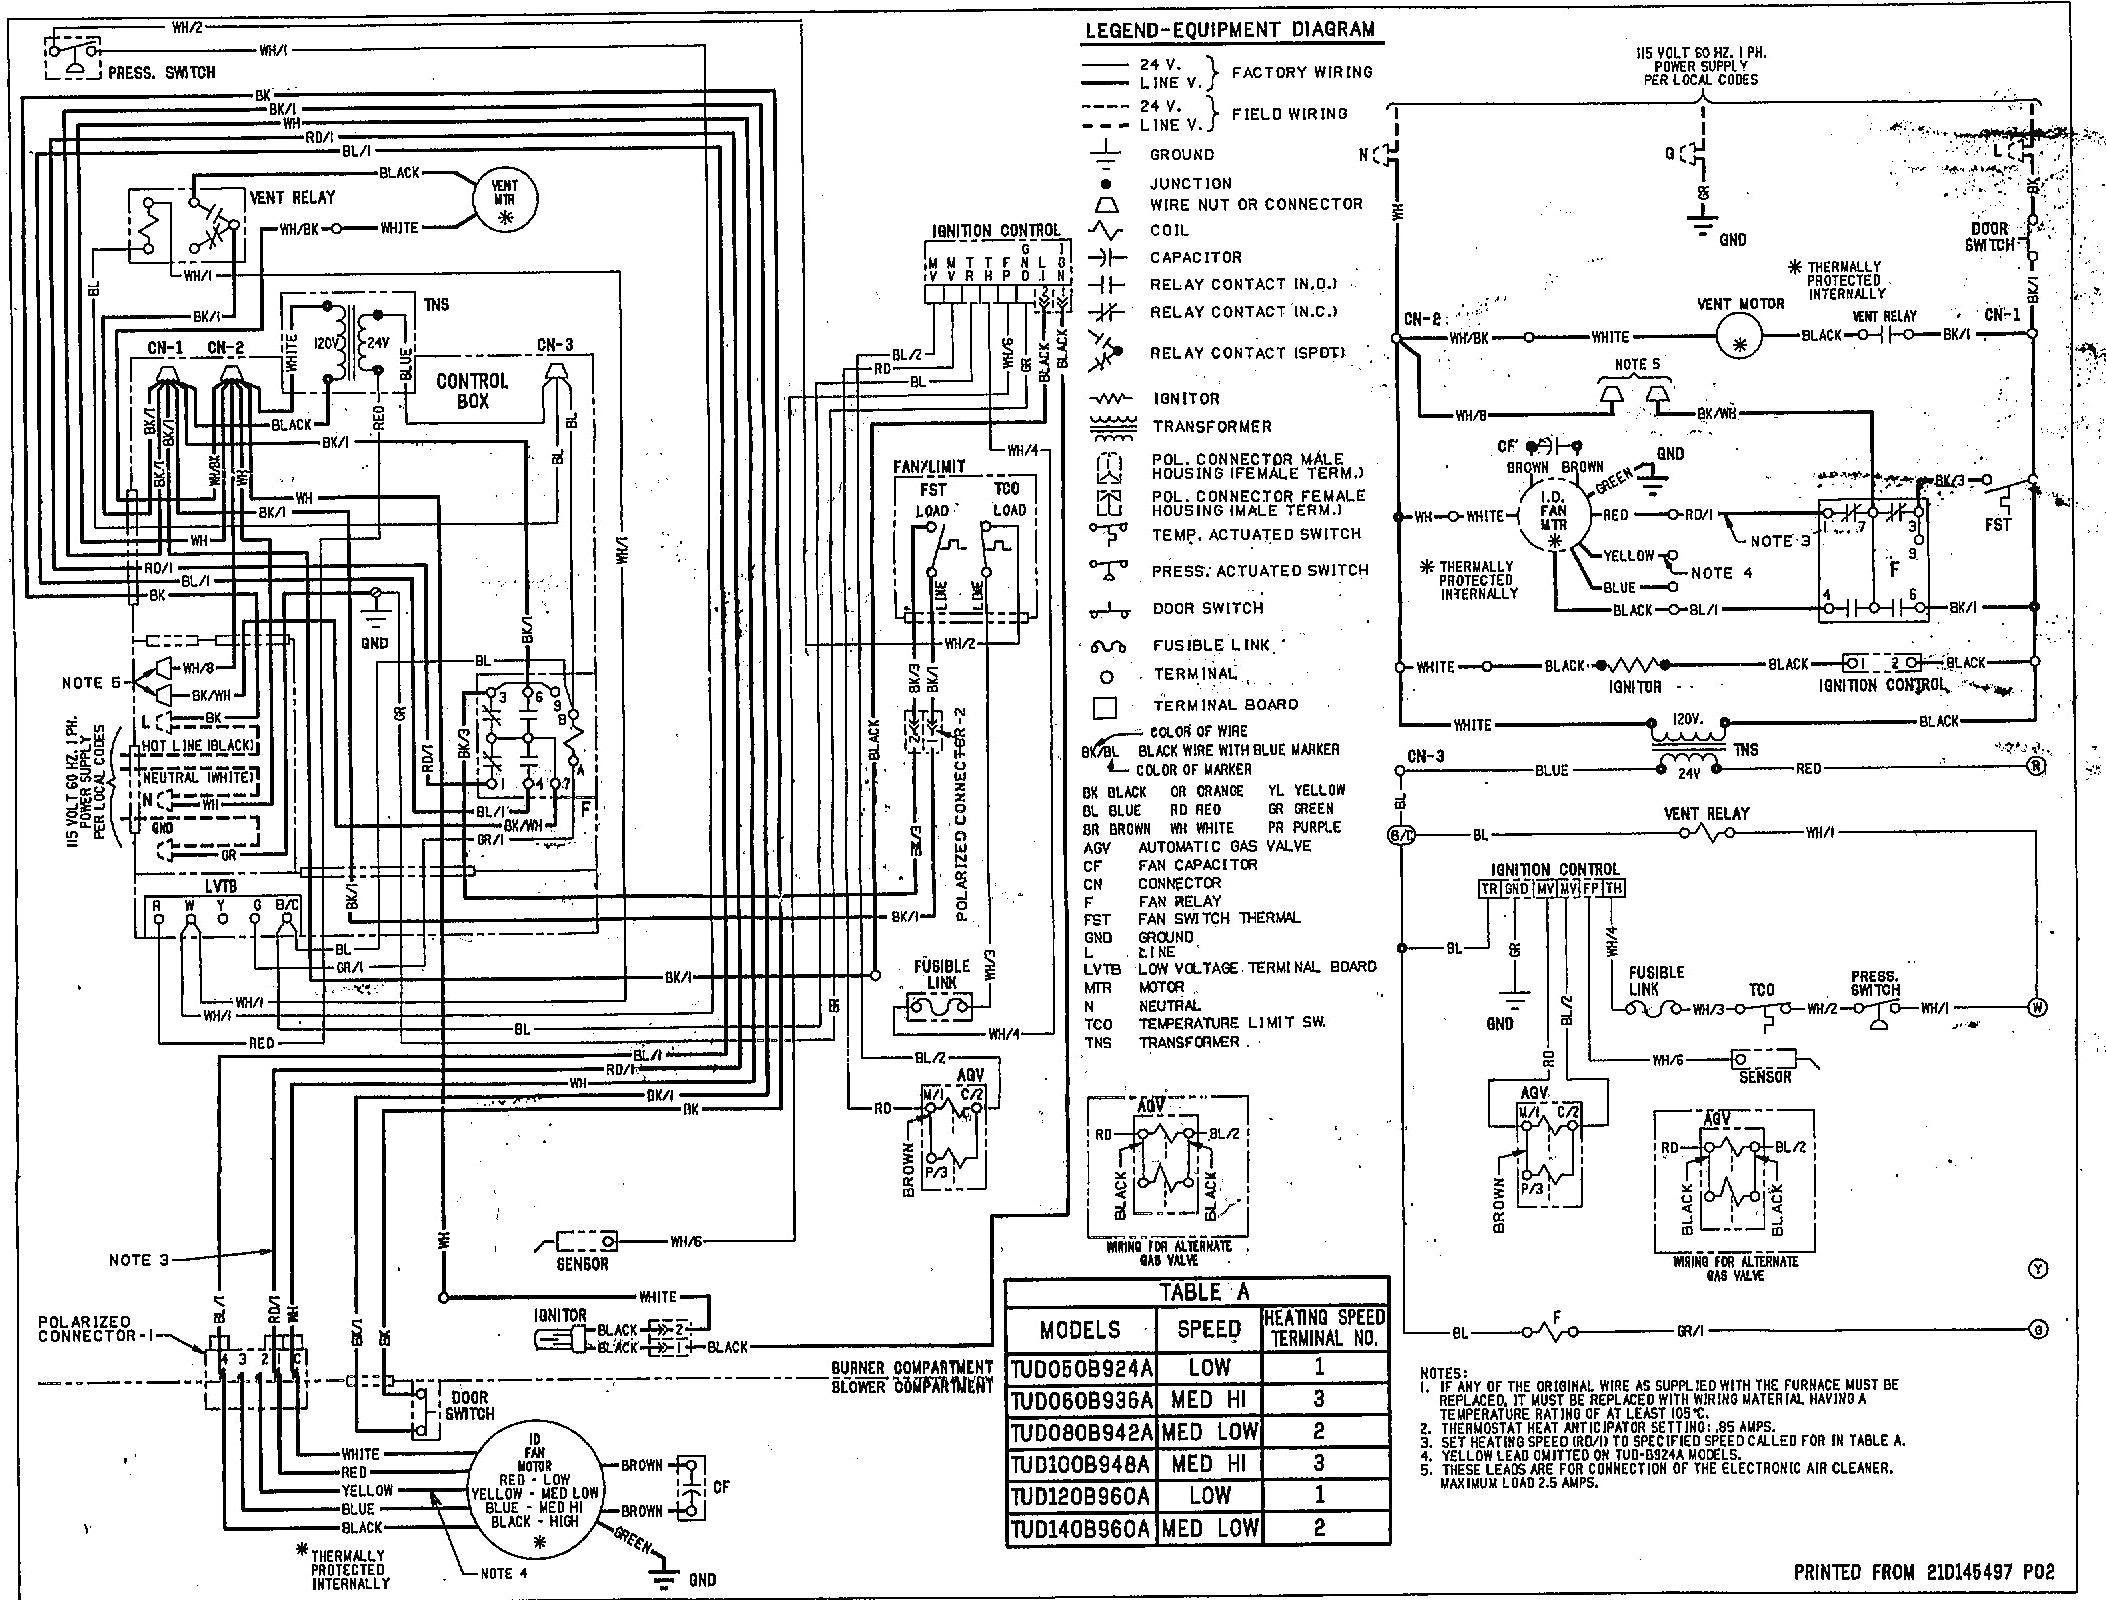 Trane Wiring Diagram Model